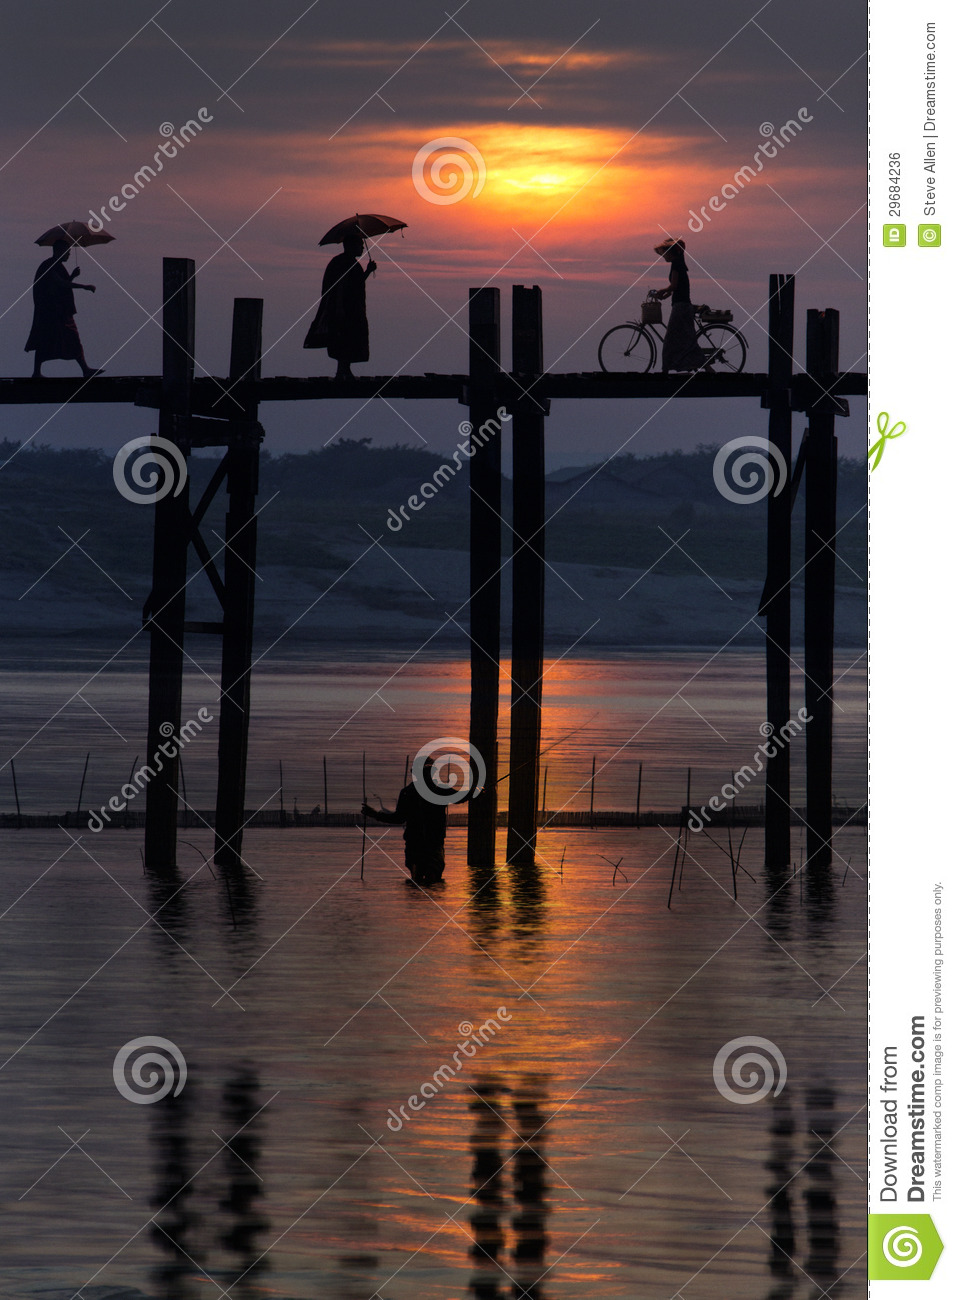 U Bein Bridge - Mandalay - Myanmar (Burma)